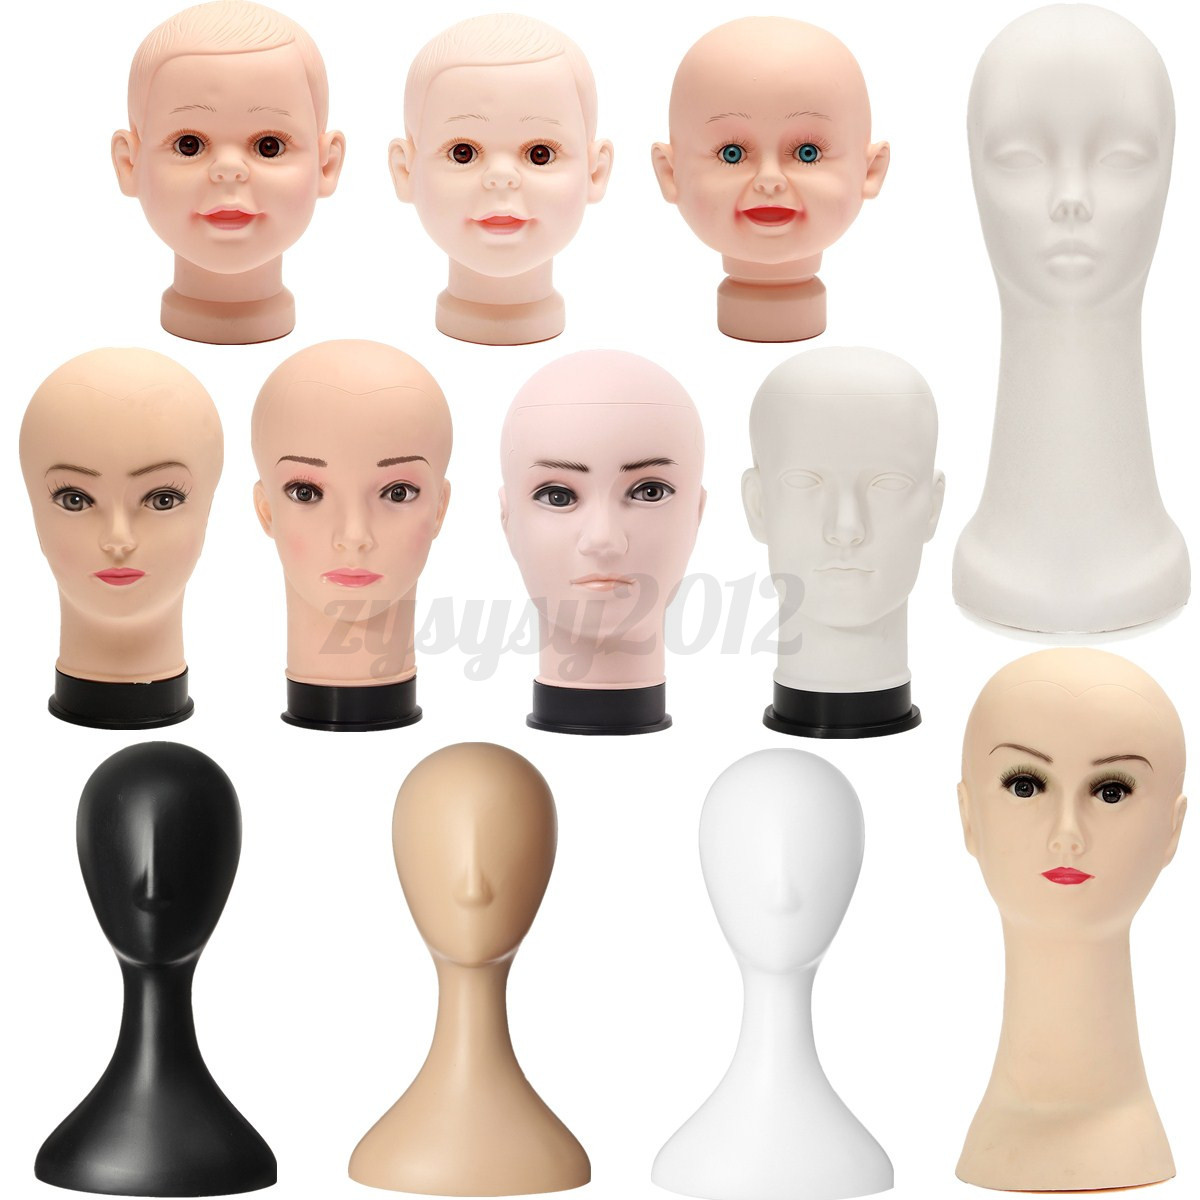 femme homme t te de pr sentoir perruque chapeau socle mannequin mod le plastique ebay. Black Bedroom Furniture Sets. Home Design Ideas